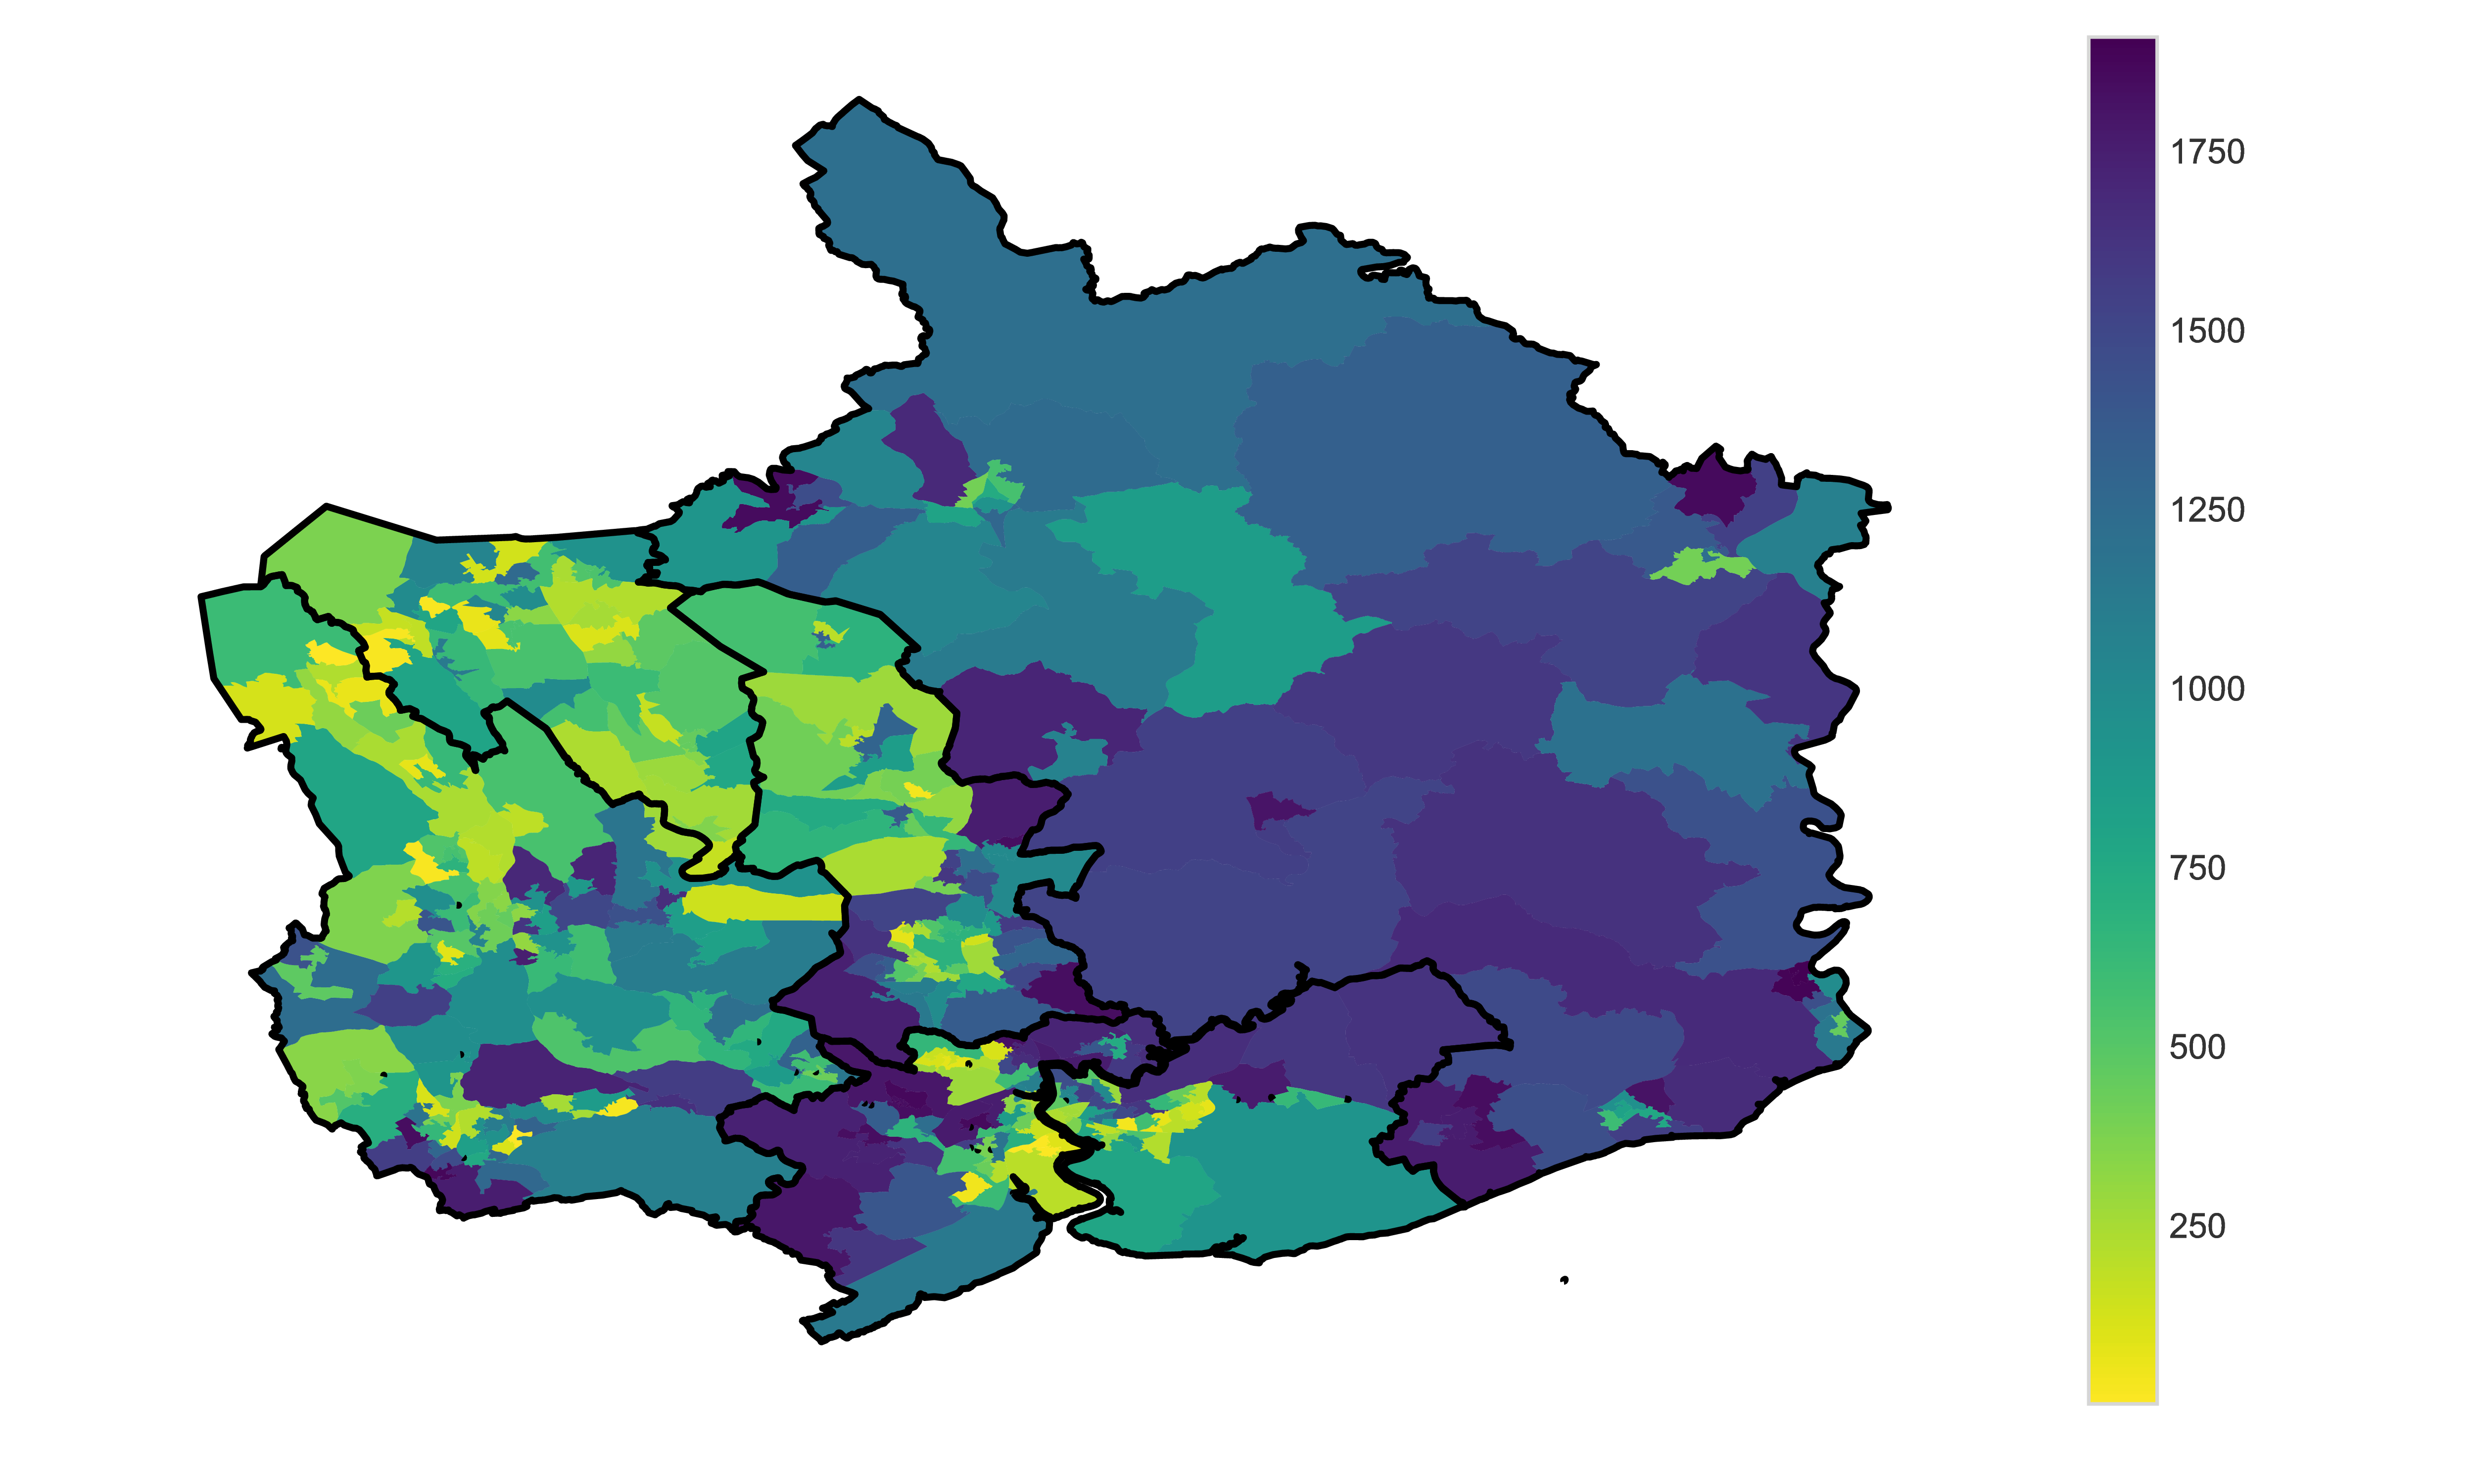 Creating maps with Geopandas